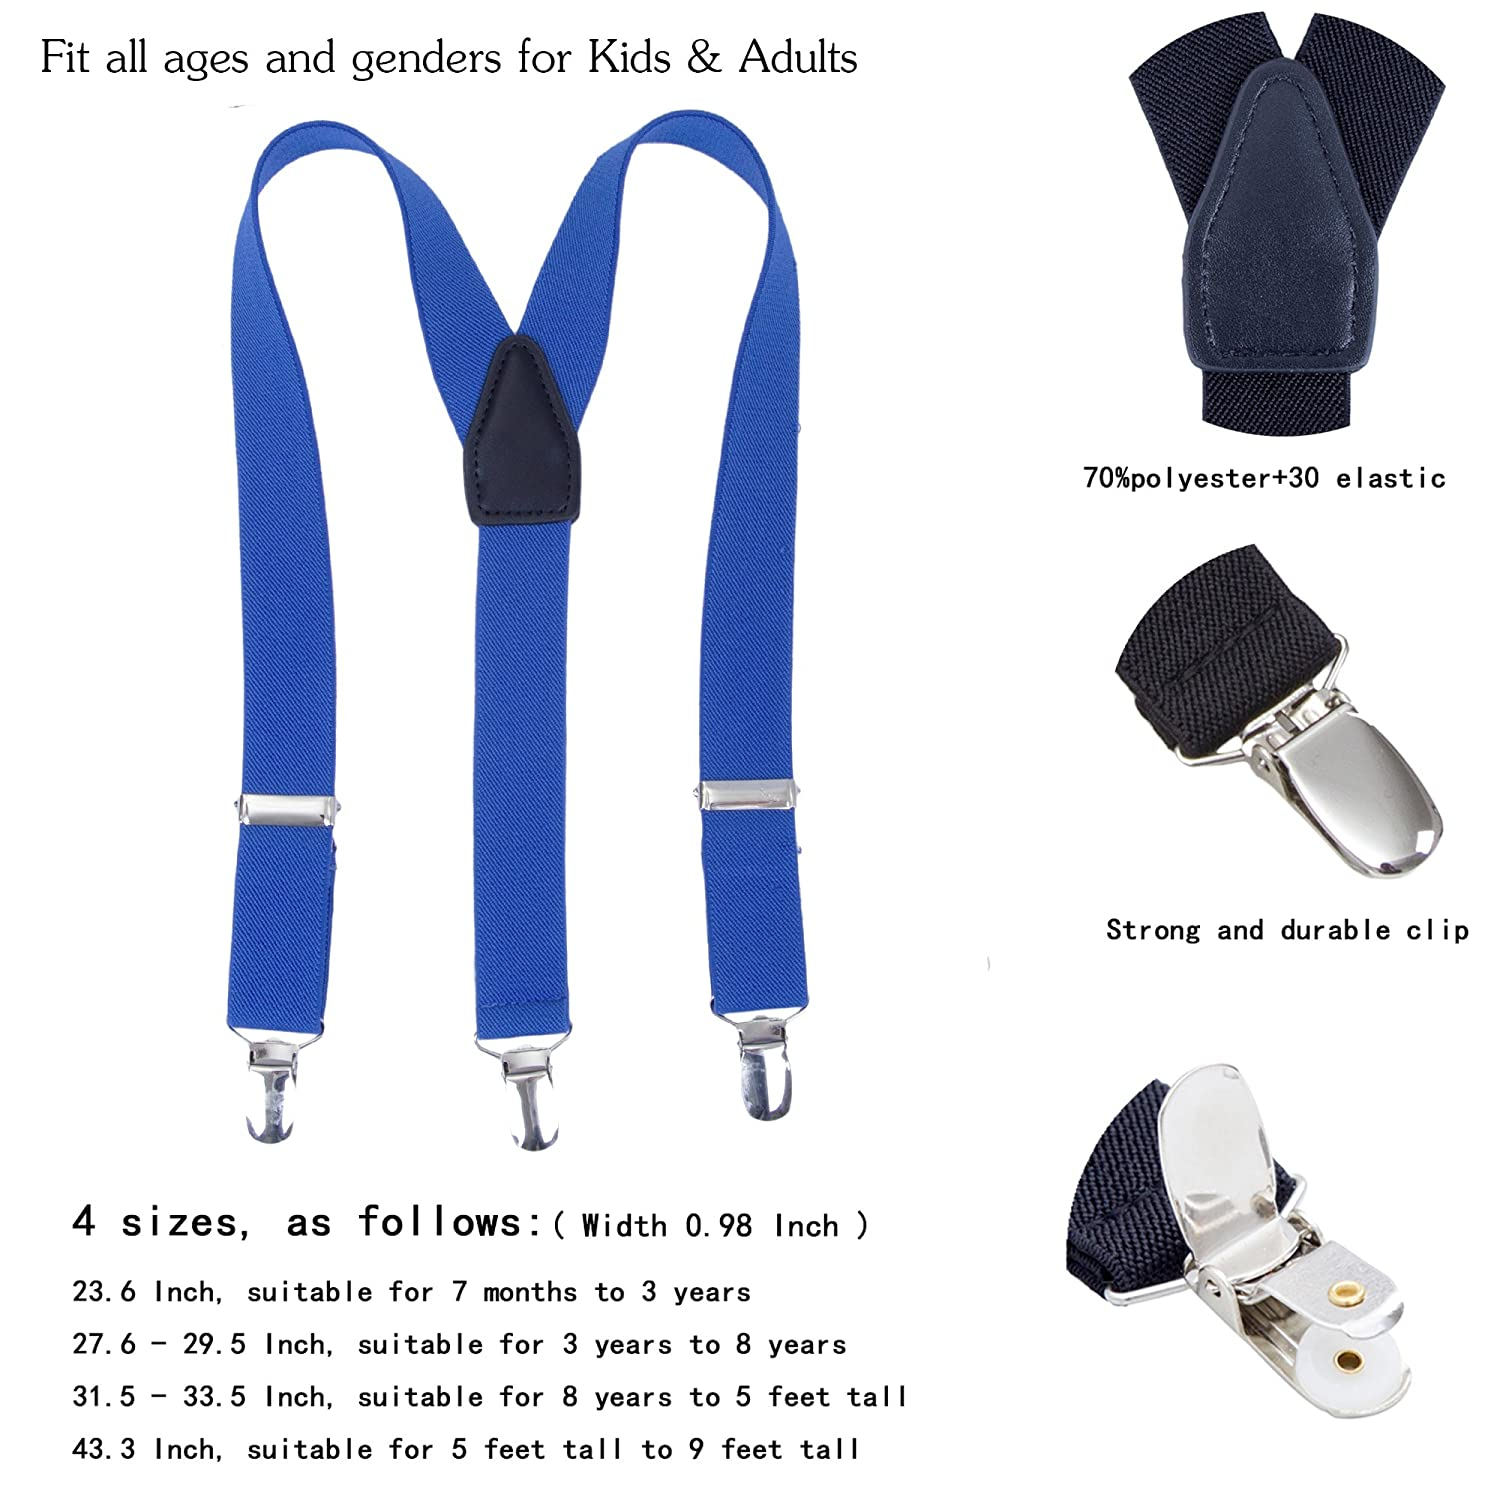 Classic Adjustable Y back Elastic Leather Childrens Suspenders 7 Months - 3 Years Suspenders for Toddlers Kids Boys Girls Red, 23.6 Inch